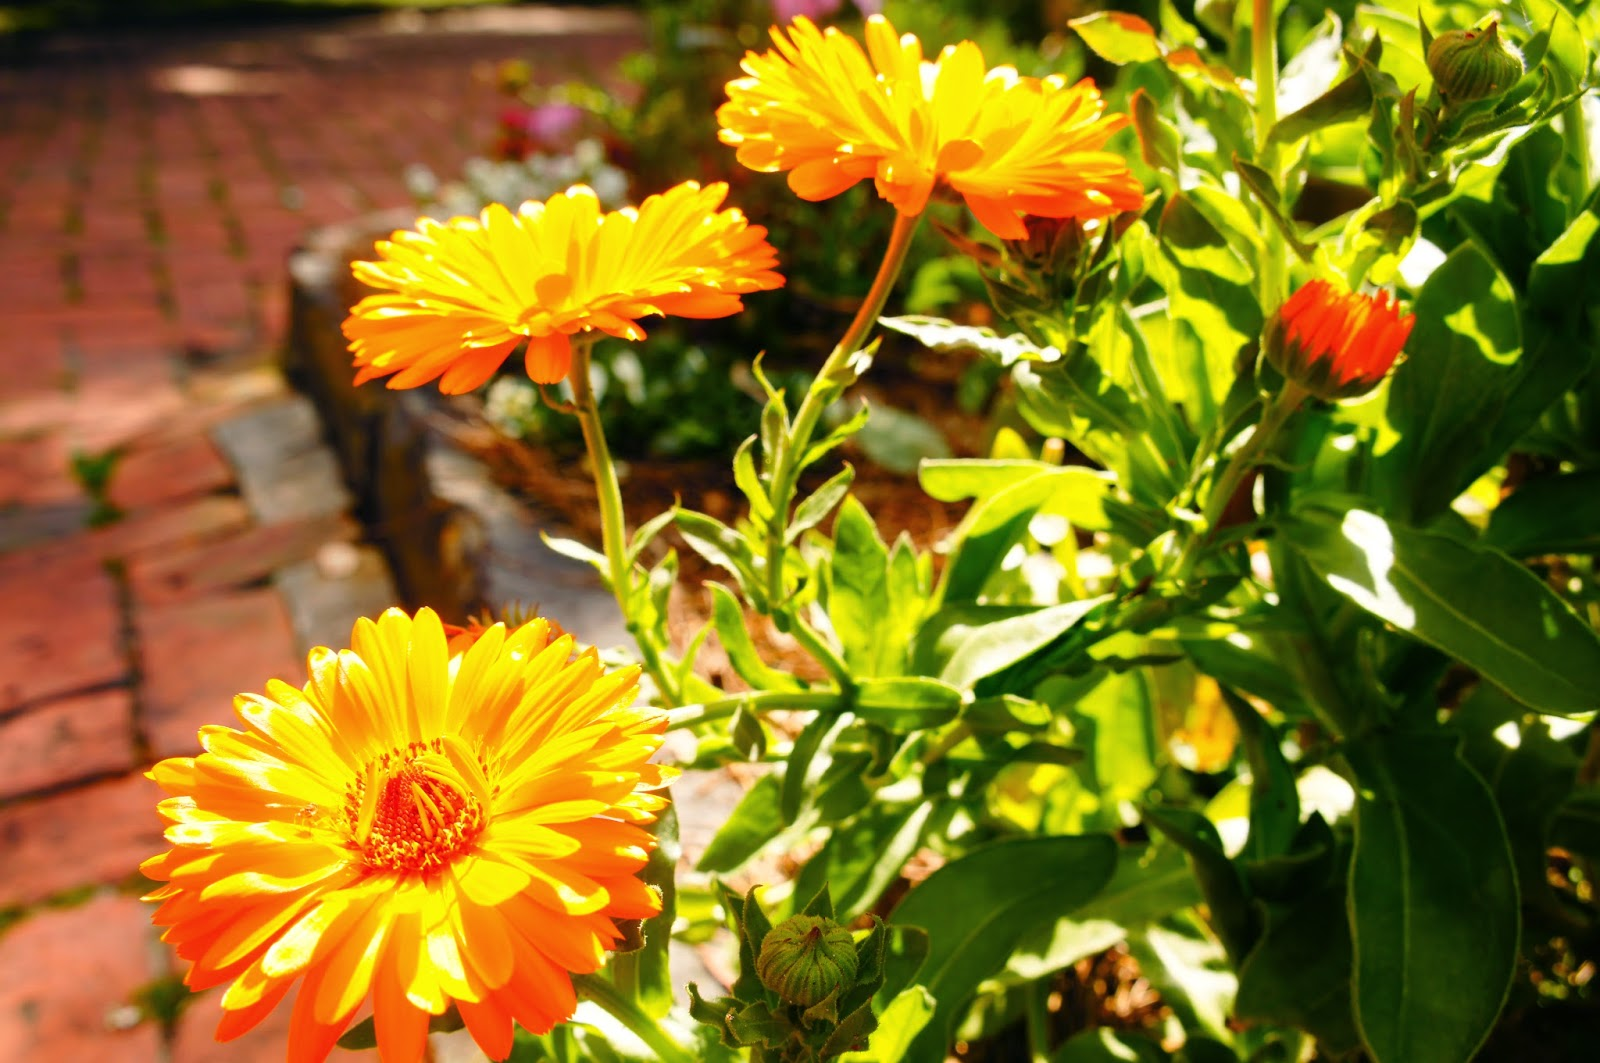 Flowers like Marigolds provide habitat for beneficial insects like honeybees, butterflies and pollinators.